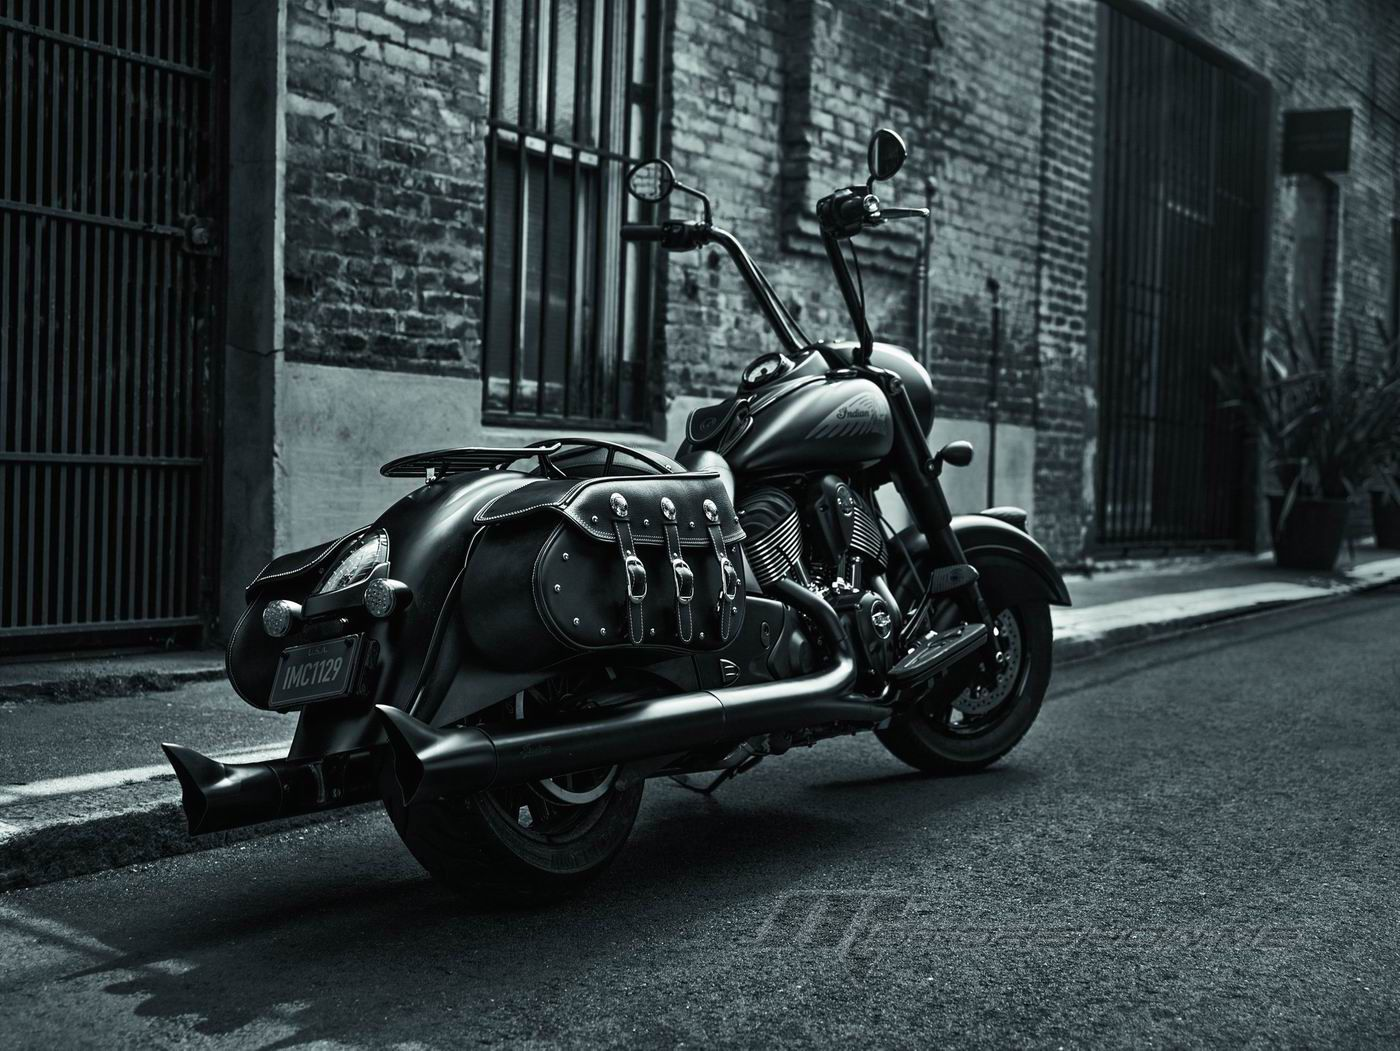 2017 Indian Motorcycle Chief Dark Horse Less Chrome More